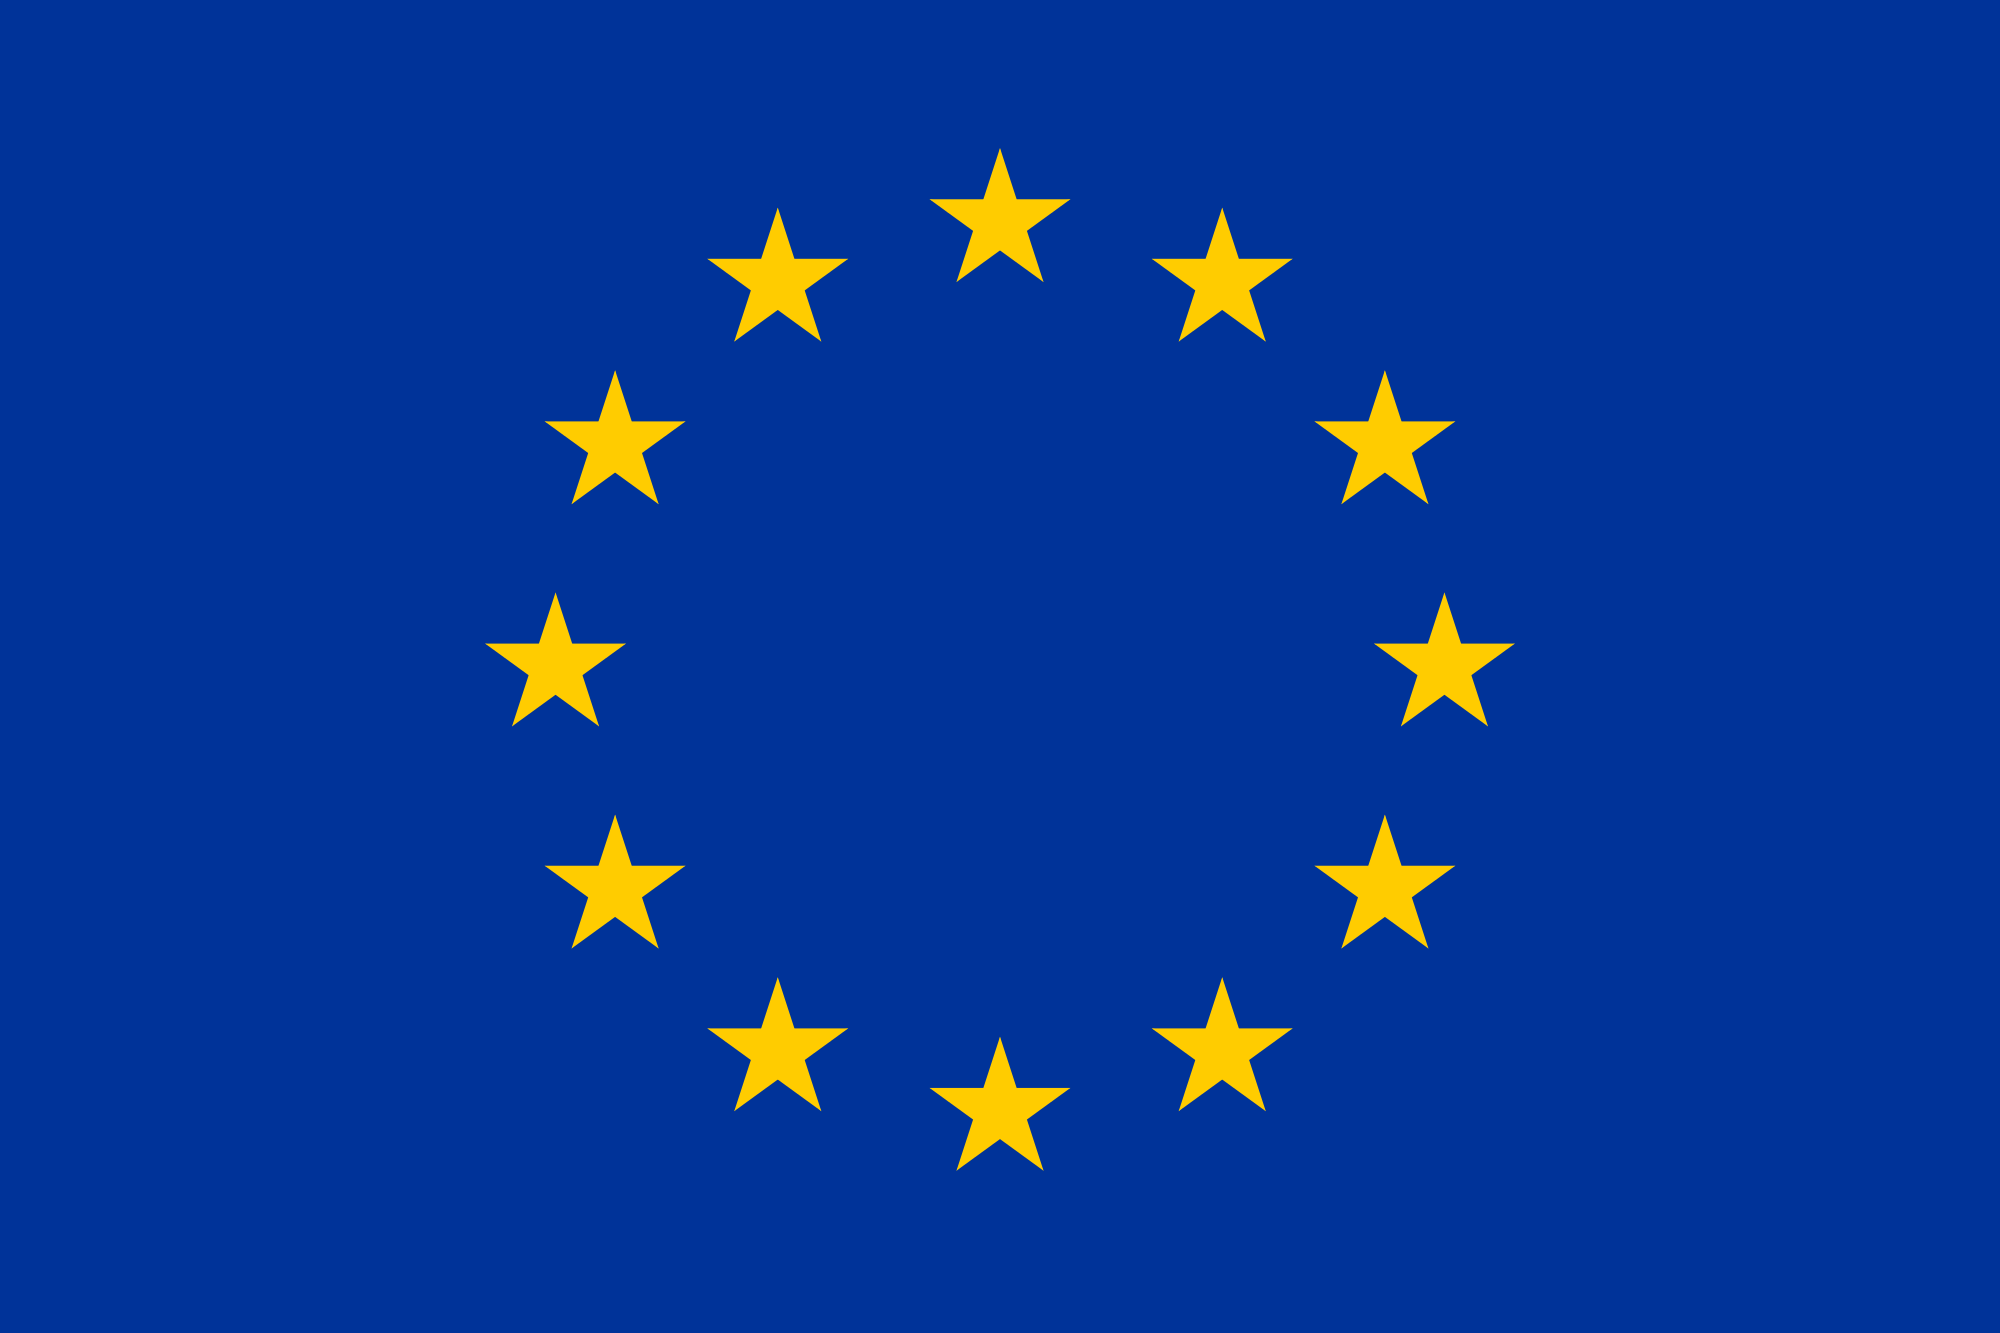 Flag_of_Europe.png